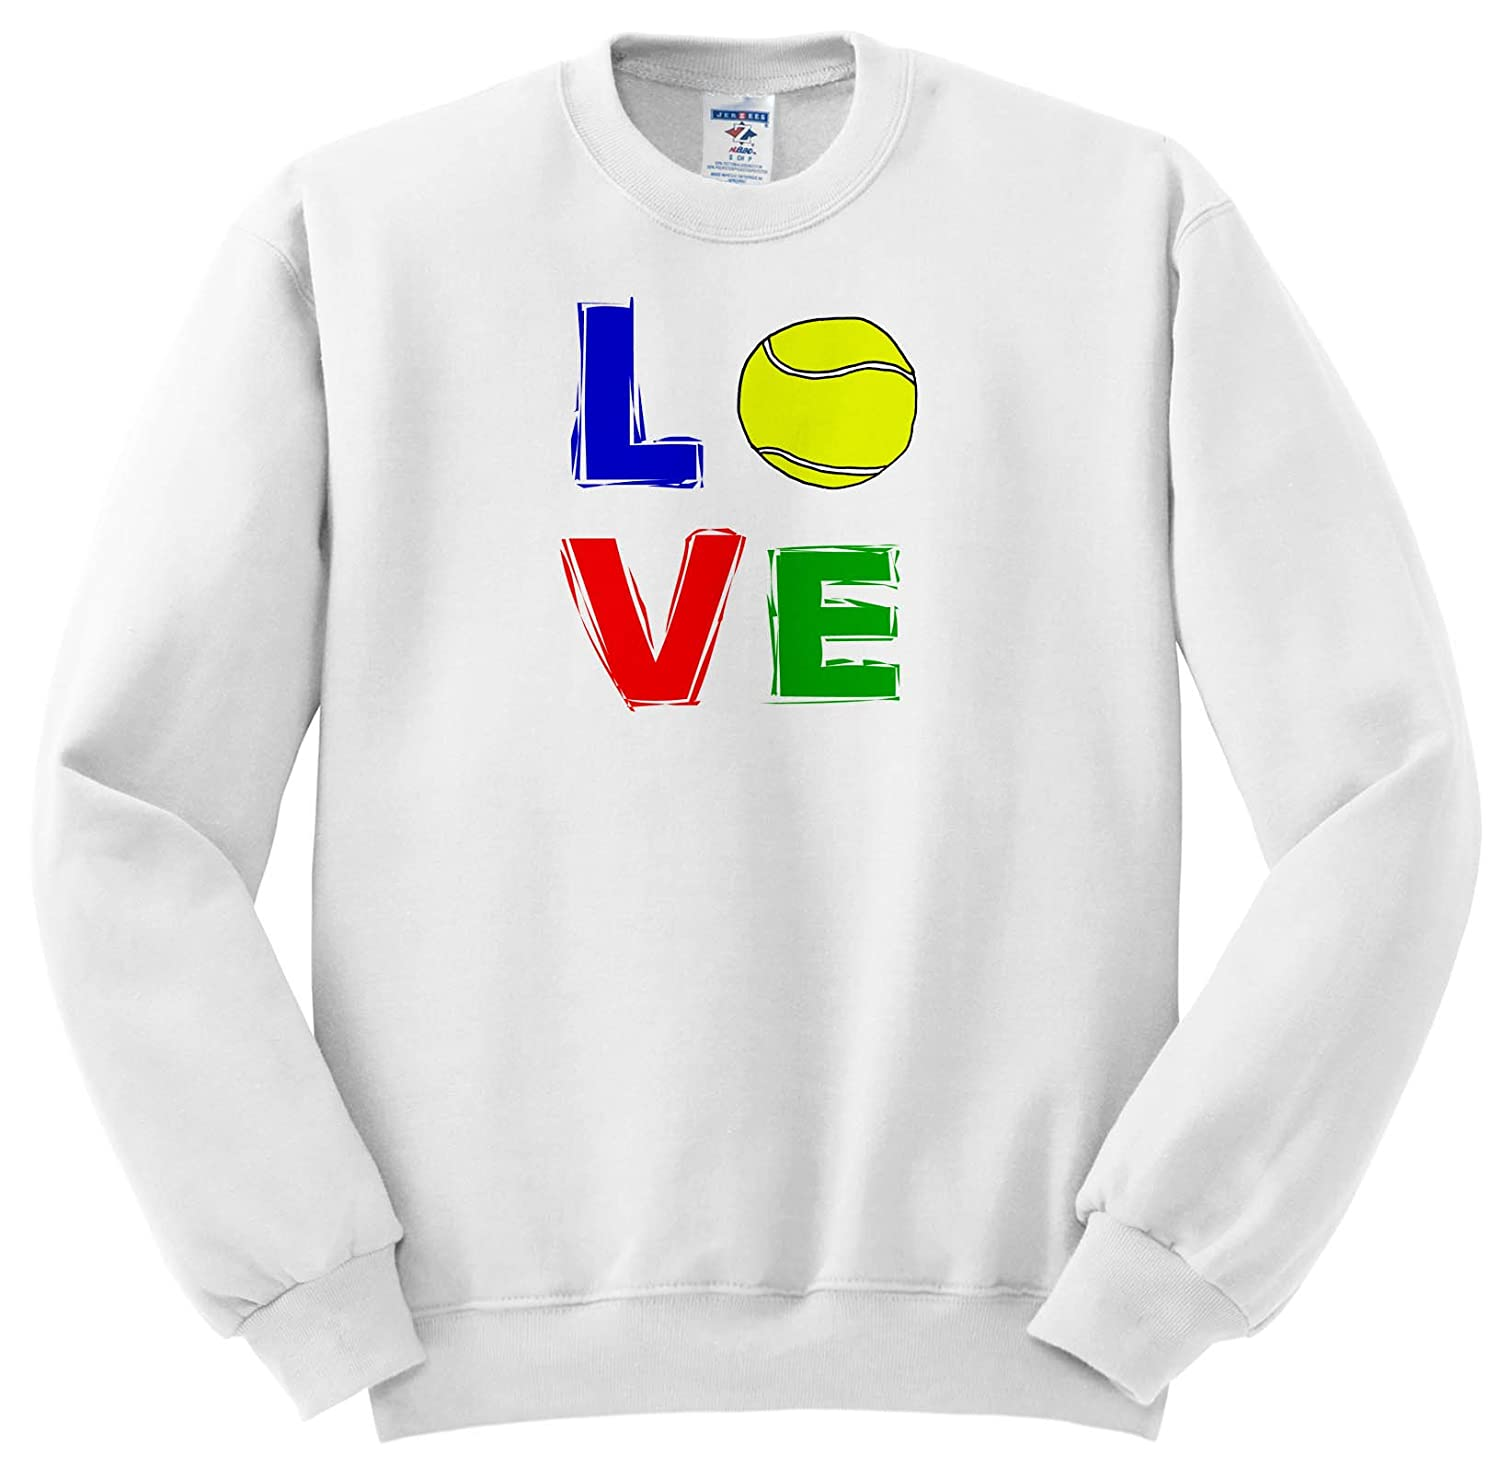 3dRose Smiles Art Sports and Hobbies - Funny Cool Tennis Art Where Love Is Spelled With Tennis Ball - Sweatshirts ss_263791